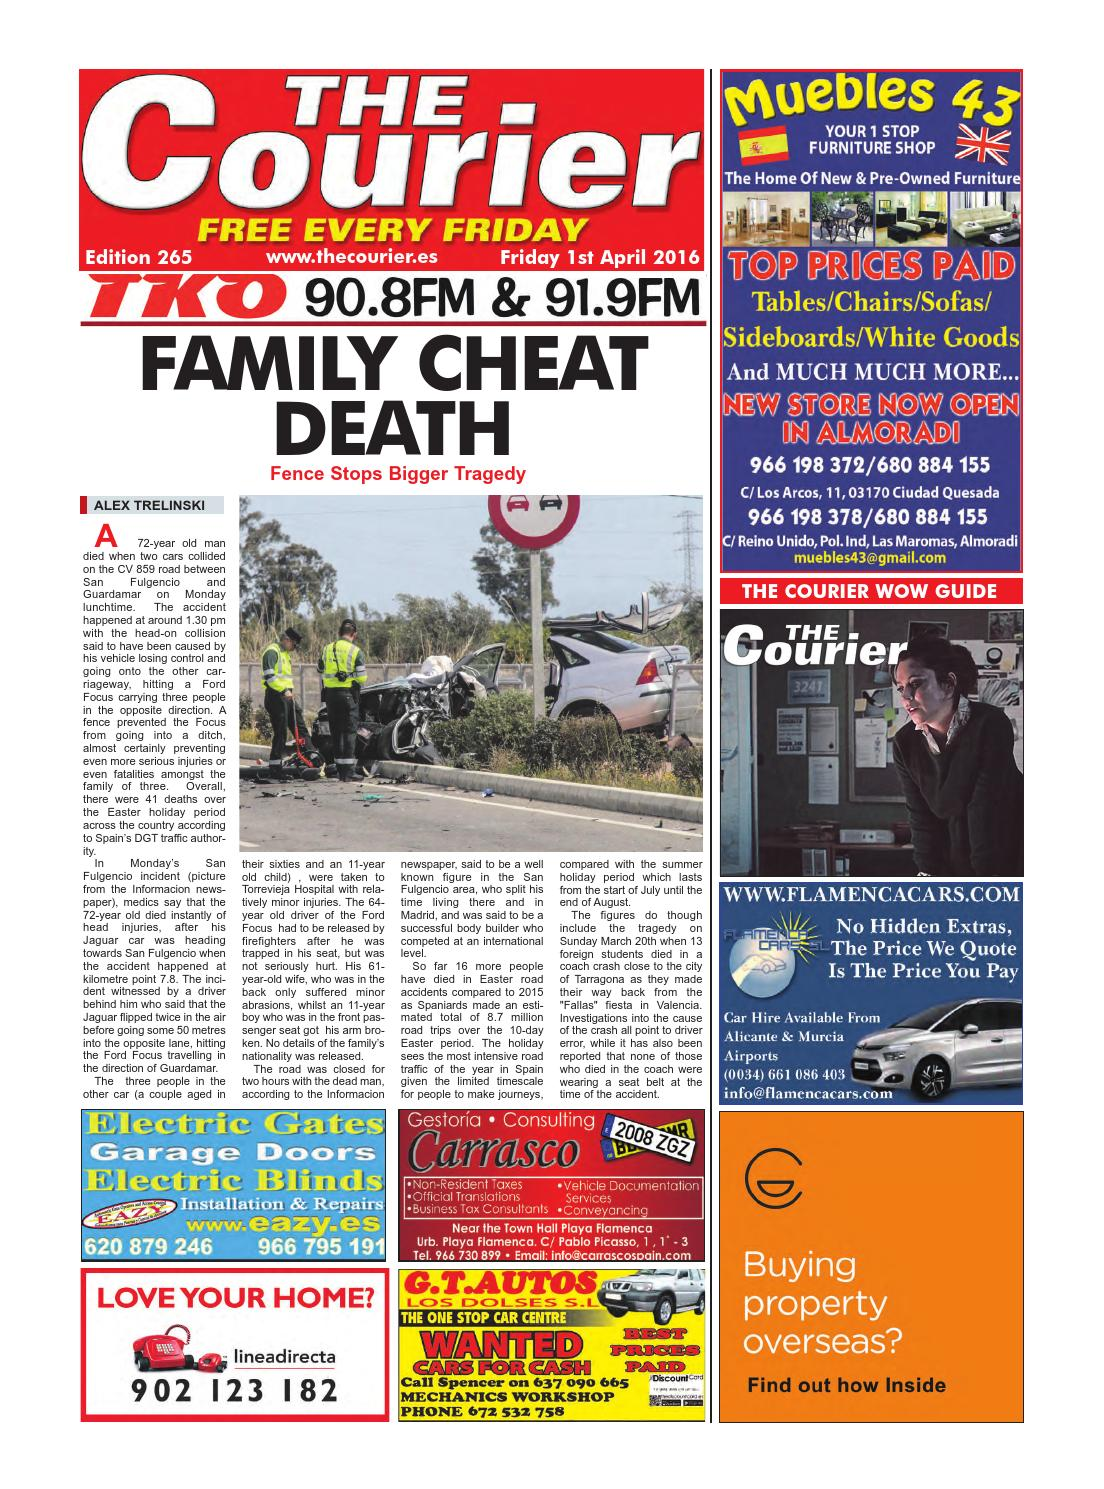 The Courier Edition 265 By The Courier Newspaper Issuu